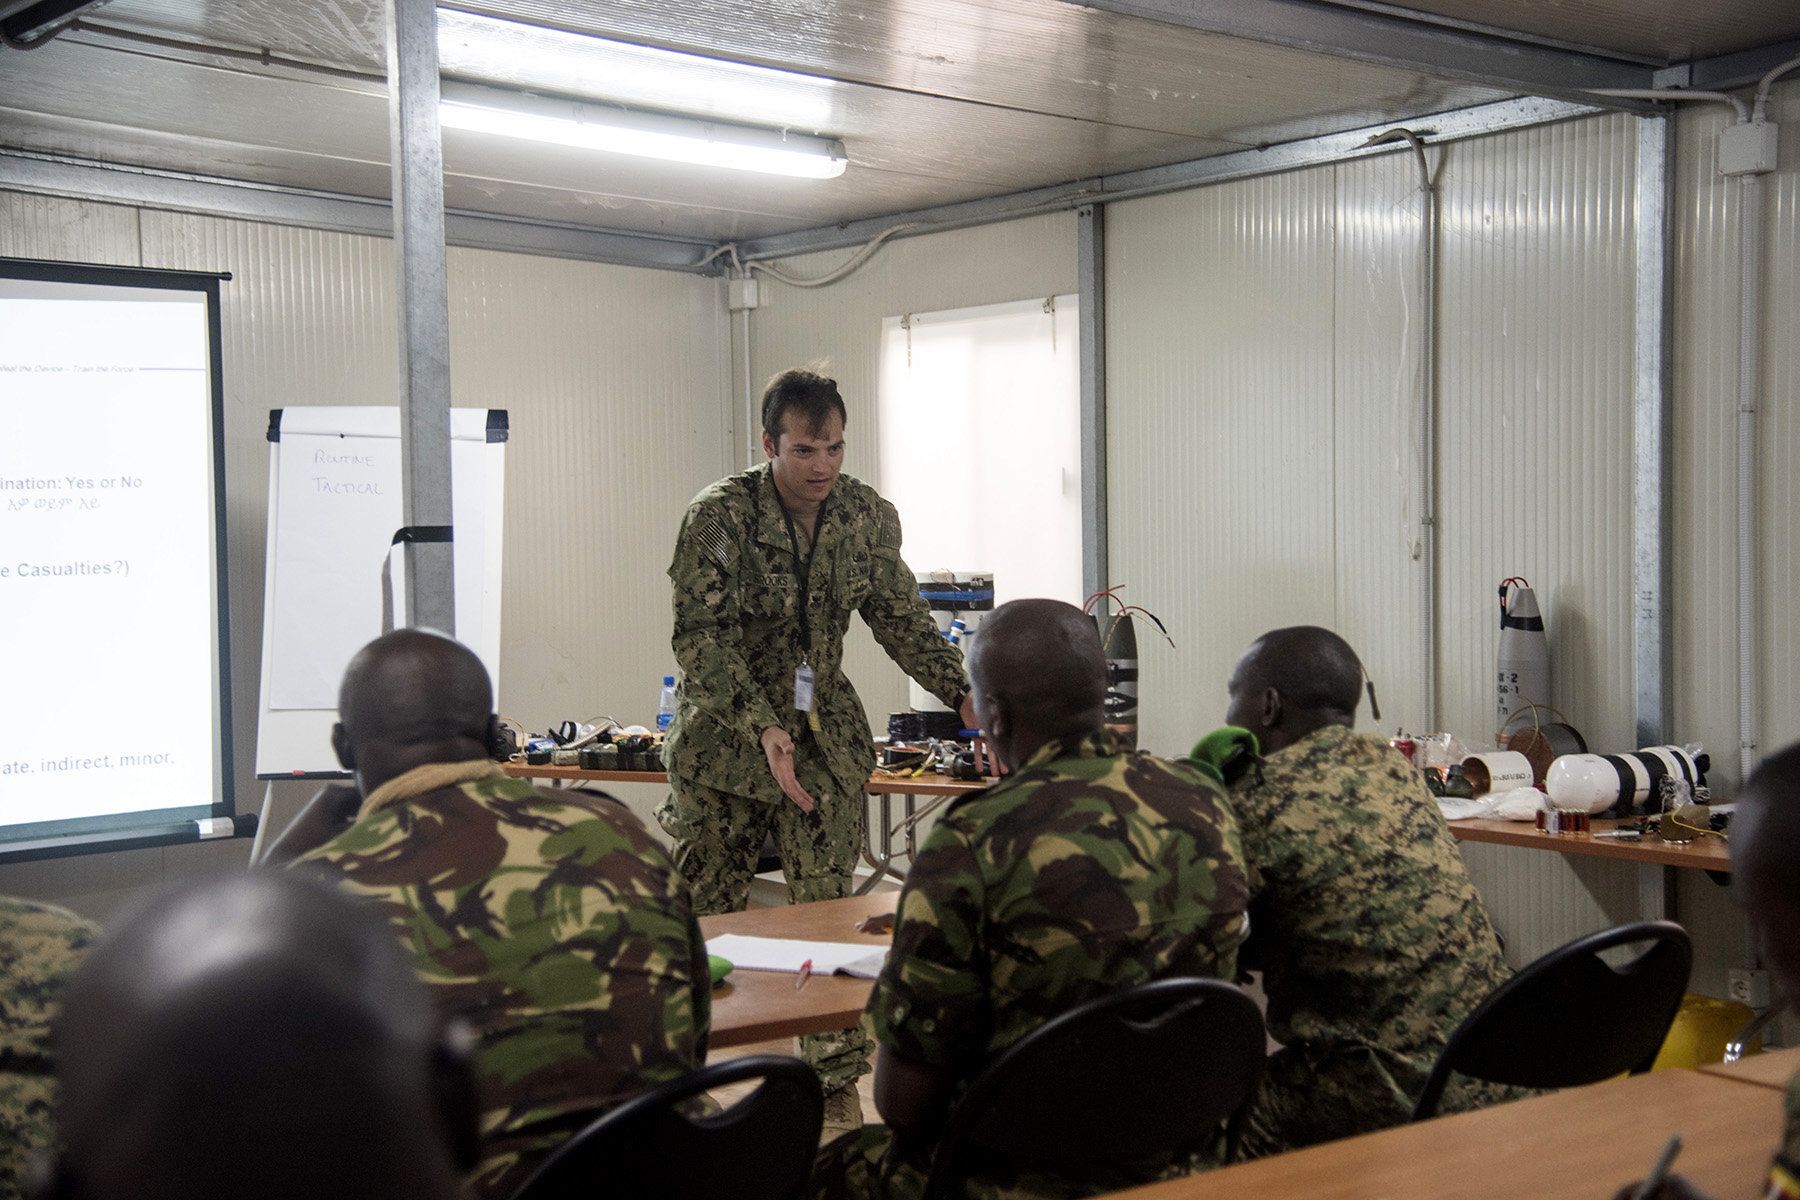 MOGADISHU, Somalia- U.S. Navy Explosive Ordnance Disposal 1st Class Tyler Brooks, Task Force Sparta, teaches how to identify and counter improvised explosive devices to participants from African Union Mission in Somalia troop contributing countries, at the Joint Military Training Center, Aug. 25, 2016, in Mogadishu, Somalia. The AMISOM soldiers learned how to effectively detect and combat IEDs to continue their efforts in regional security and stability in Somalia. Task Force Sparta members are a part of the Combined Joint Task Force-Horn of Africa, which works to strengthen Eastern African partners in countering and neutralizing violent extremists in Somalia and the region.   (U.S. Air Force photo by Staff Sgt. Tiffany DeNault)